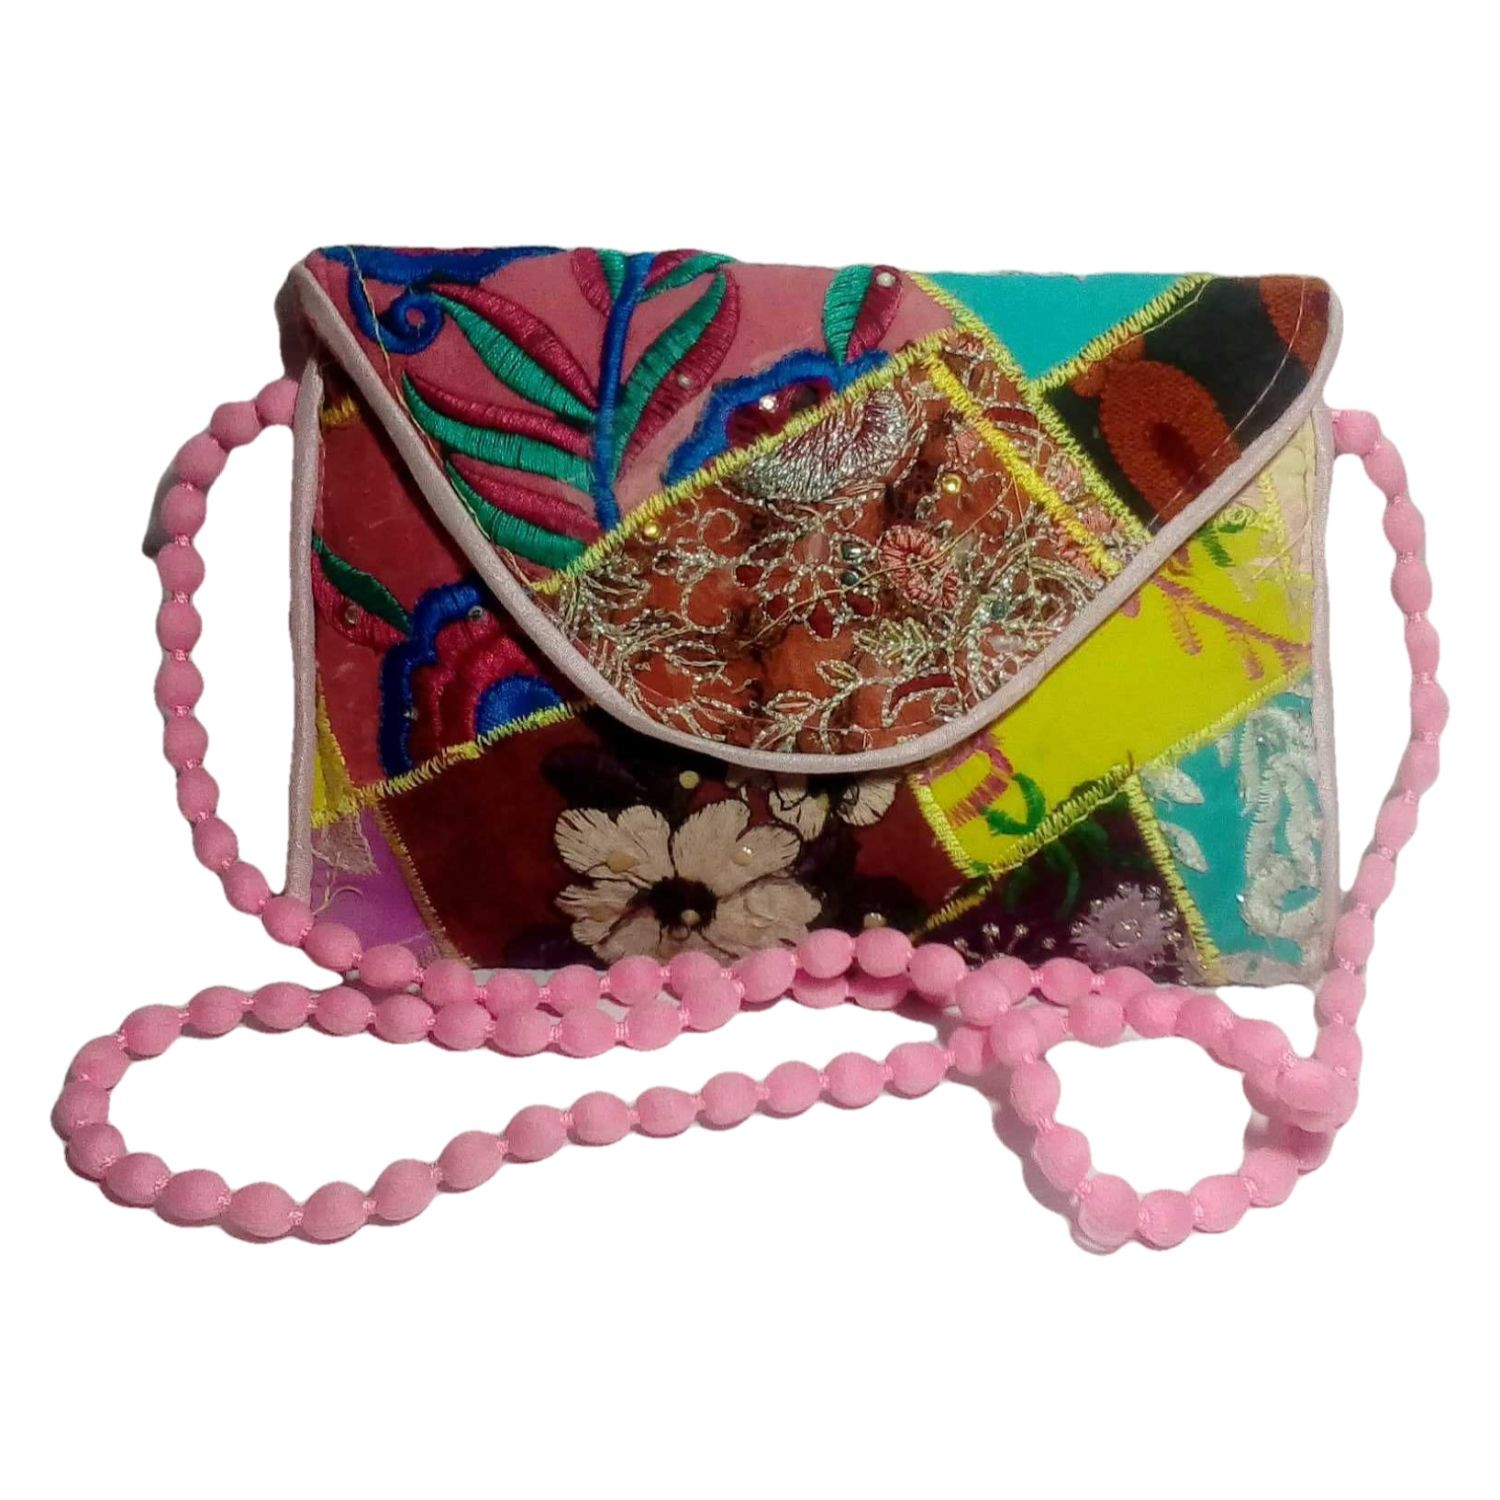 Handmade Excellent Pink Genuine Sling Bag with embroidery work  by Women Self Help Groups of Rajasthan